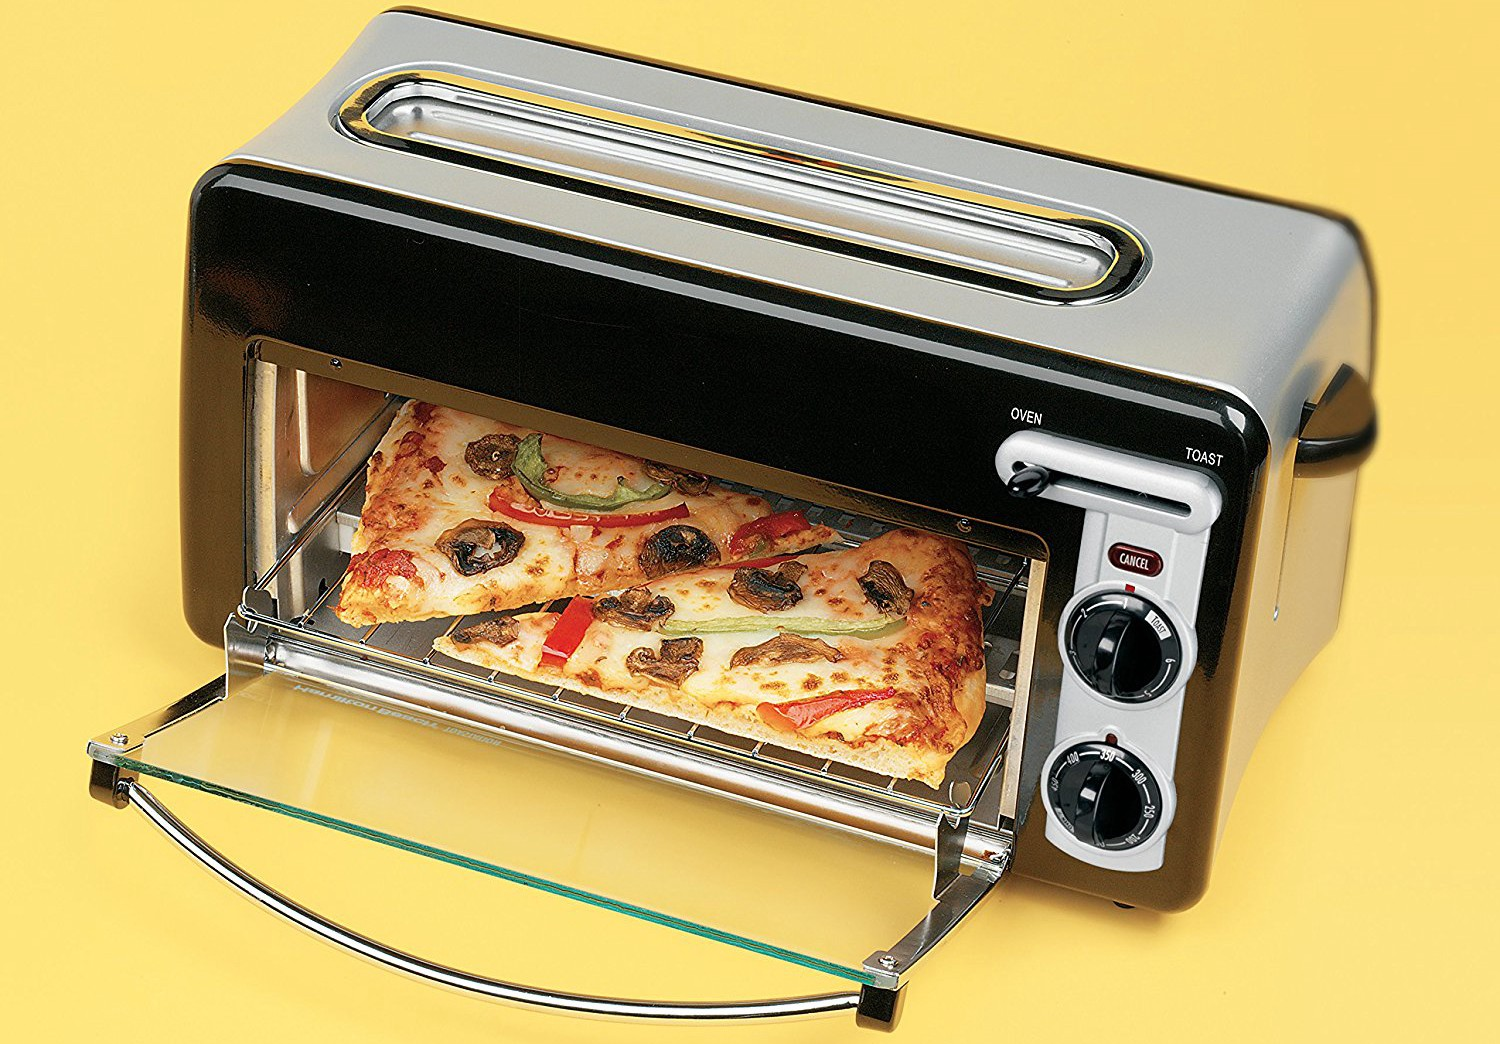 What Is The Best Way To Cook A Frozen Pizza In A Convection Toaster Hamilton Beach Toaster Oven Wiring Diagram on toaster oven thermostat, blue m oven wiring diagram, toaster oven fuse, toaster oven repair, ge wall oven wiring diagram, toaster oven cabinet, microwave oven wiring diagram, toaster oven manual, toaster oven dimensions, toaster oven lights, convection oven wiring diagram, toaster oven schematic, toaster oven parts, toaster electric diagram, toaster oven safety, toaster parts diagram, toaster oven cover, toaster oven assembly, toaster oven accessories, electric oven wiring diagram,